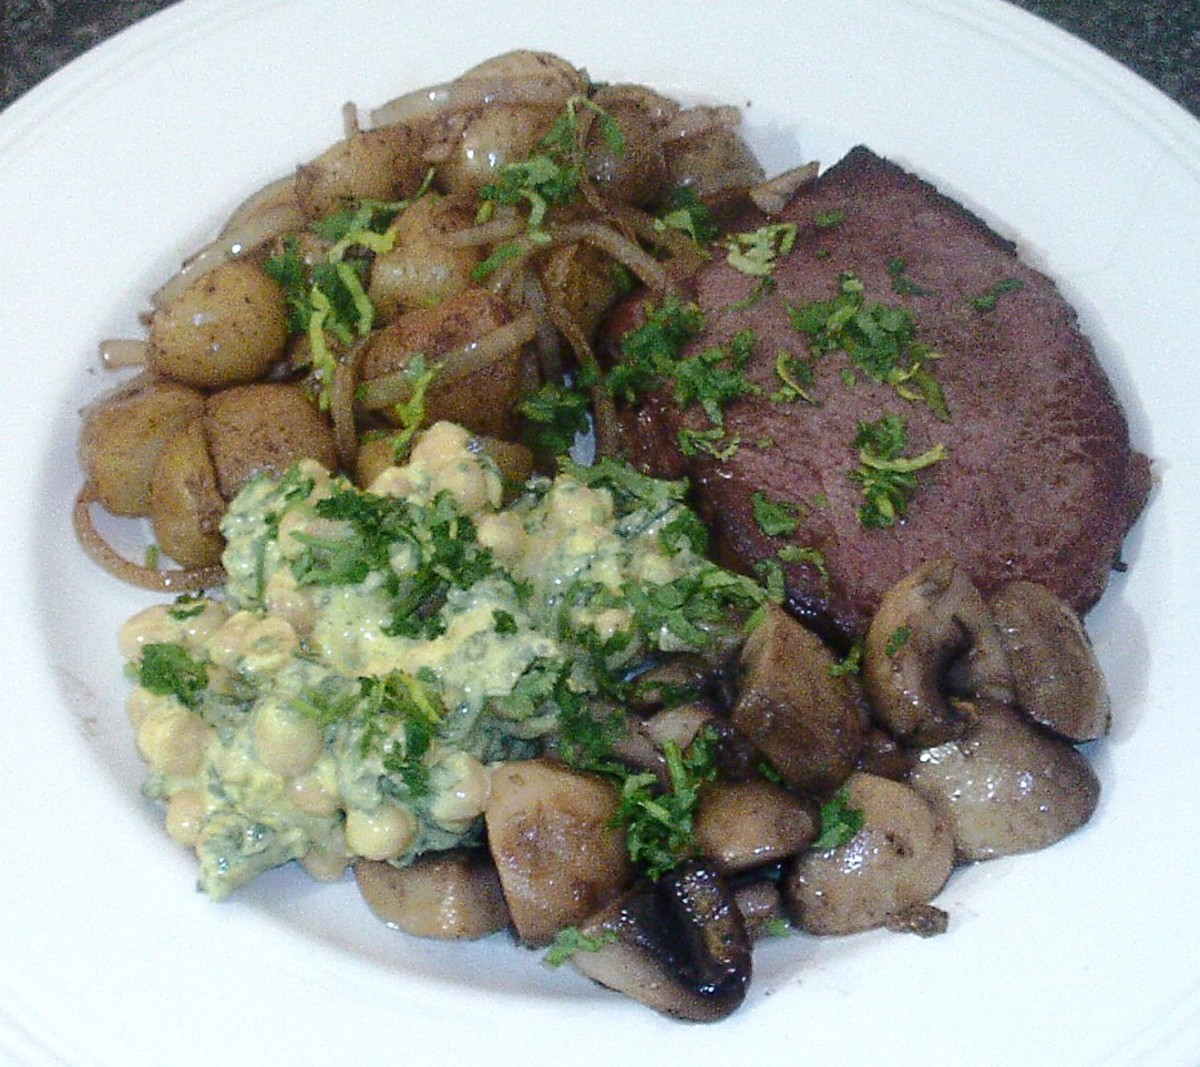 Steak is fried with potatoes and onions fried in its juices, garlic mushrooms and a spicy chickpeas salad